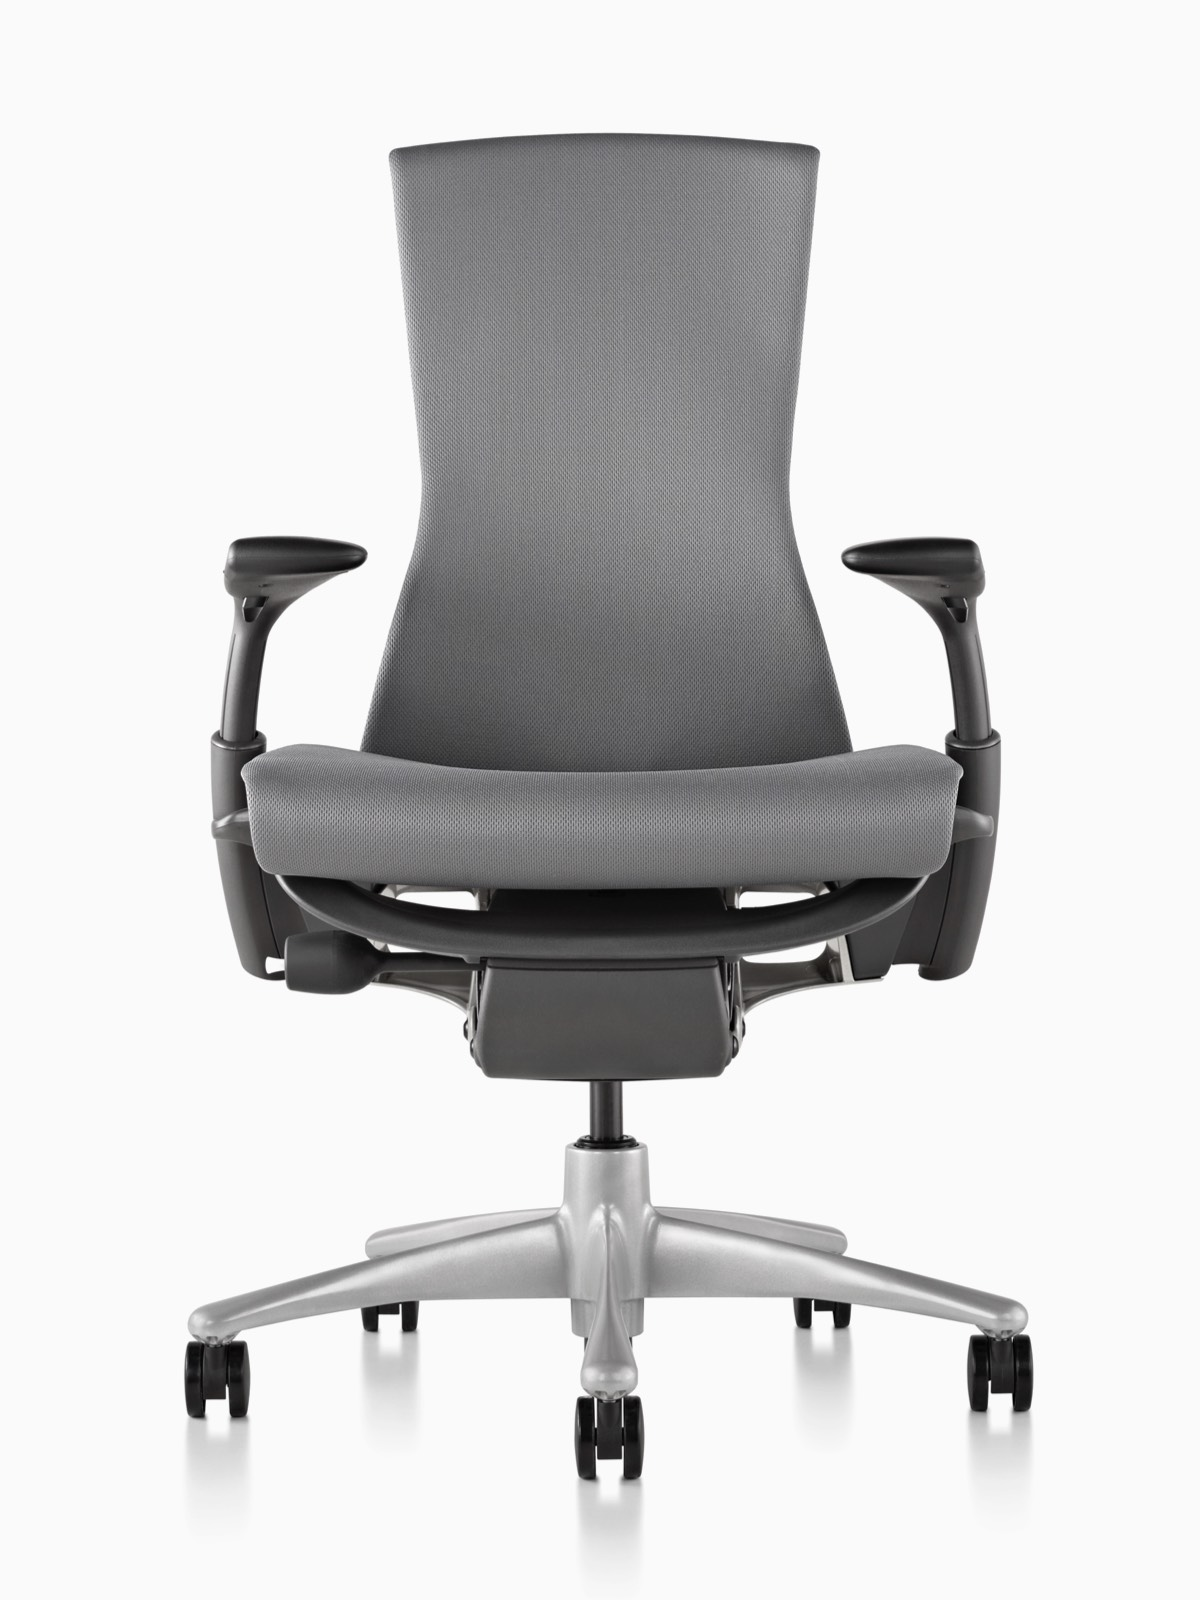 Embody Design Story Office Chairs Herman Miller